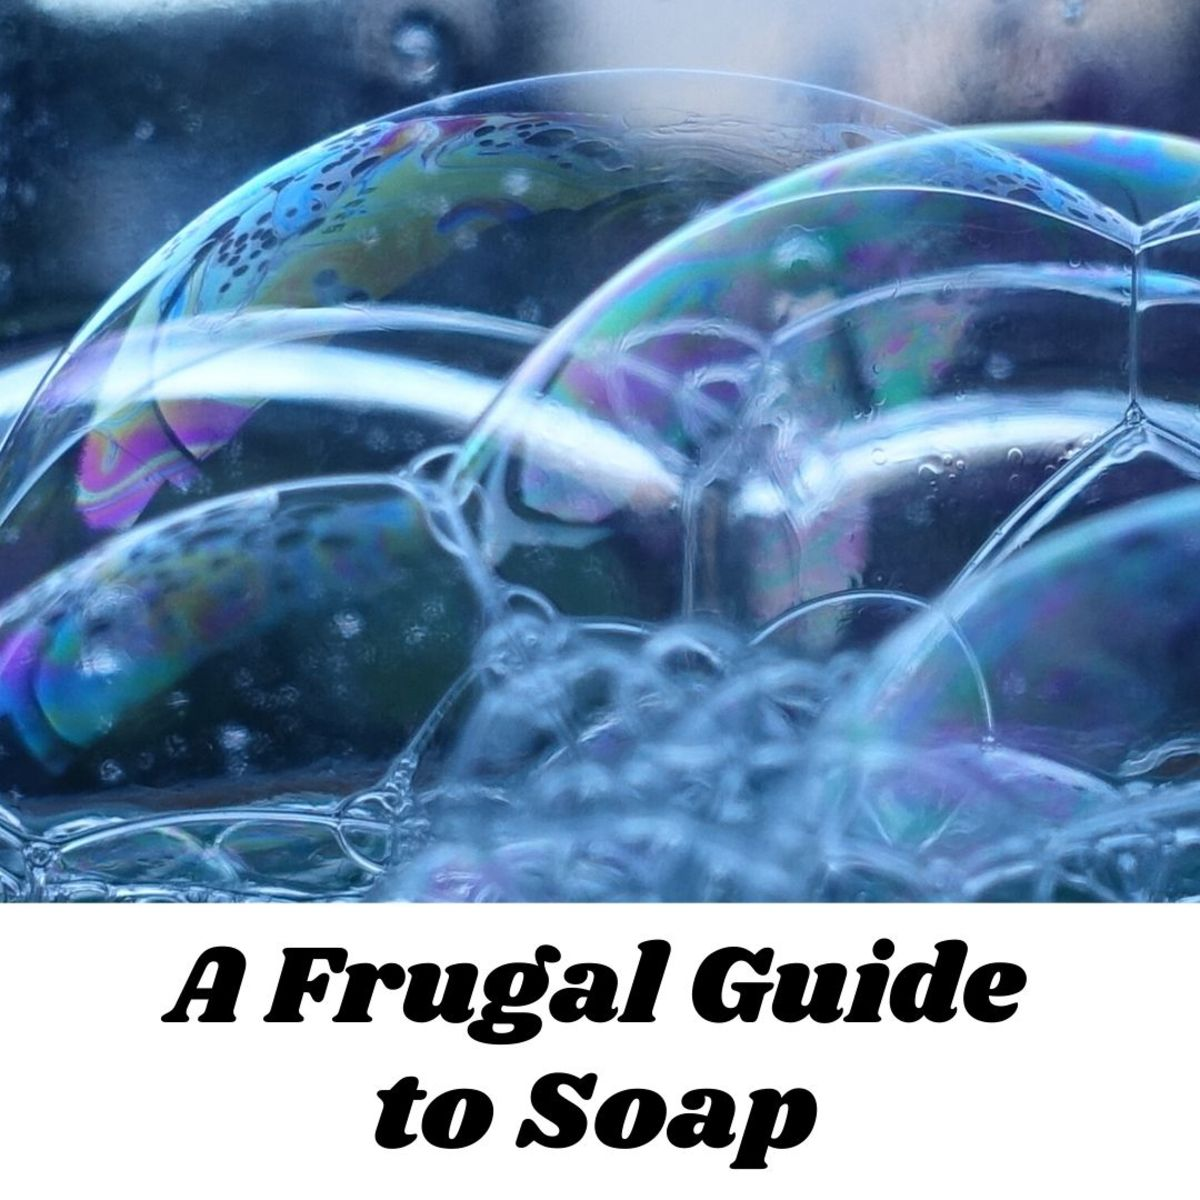 The Frugal Guide to Must-Have Soaps